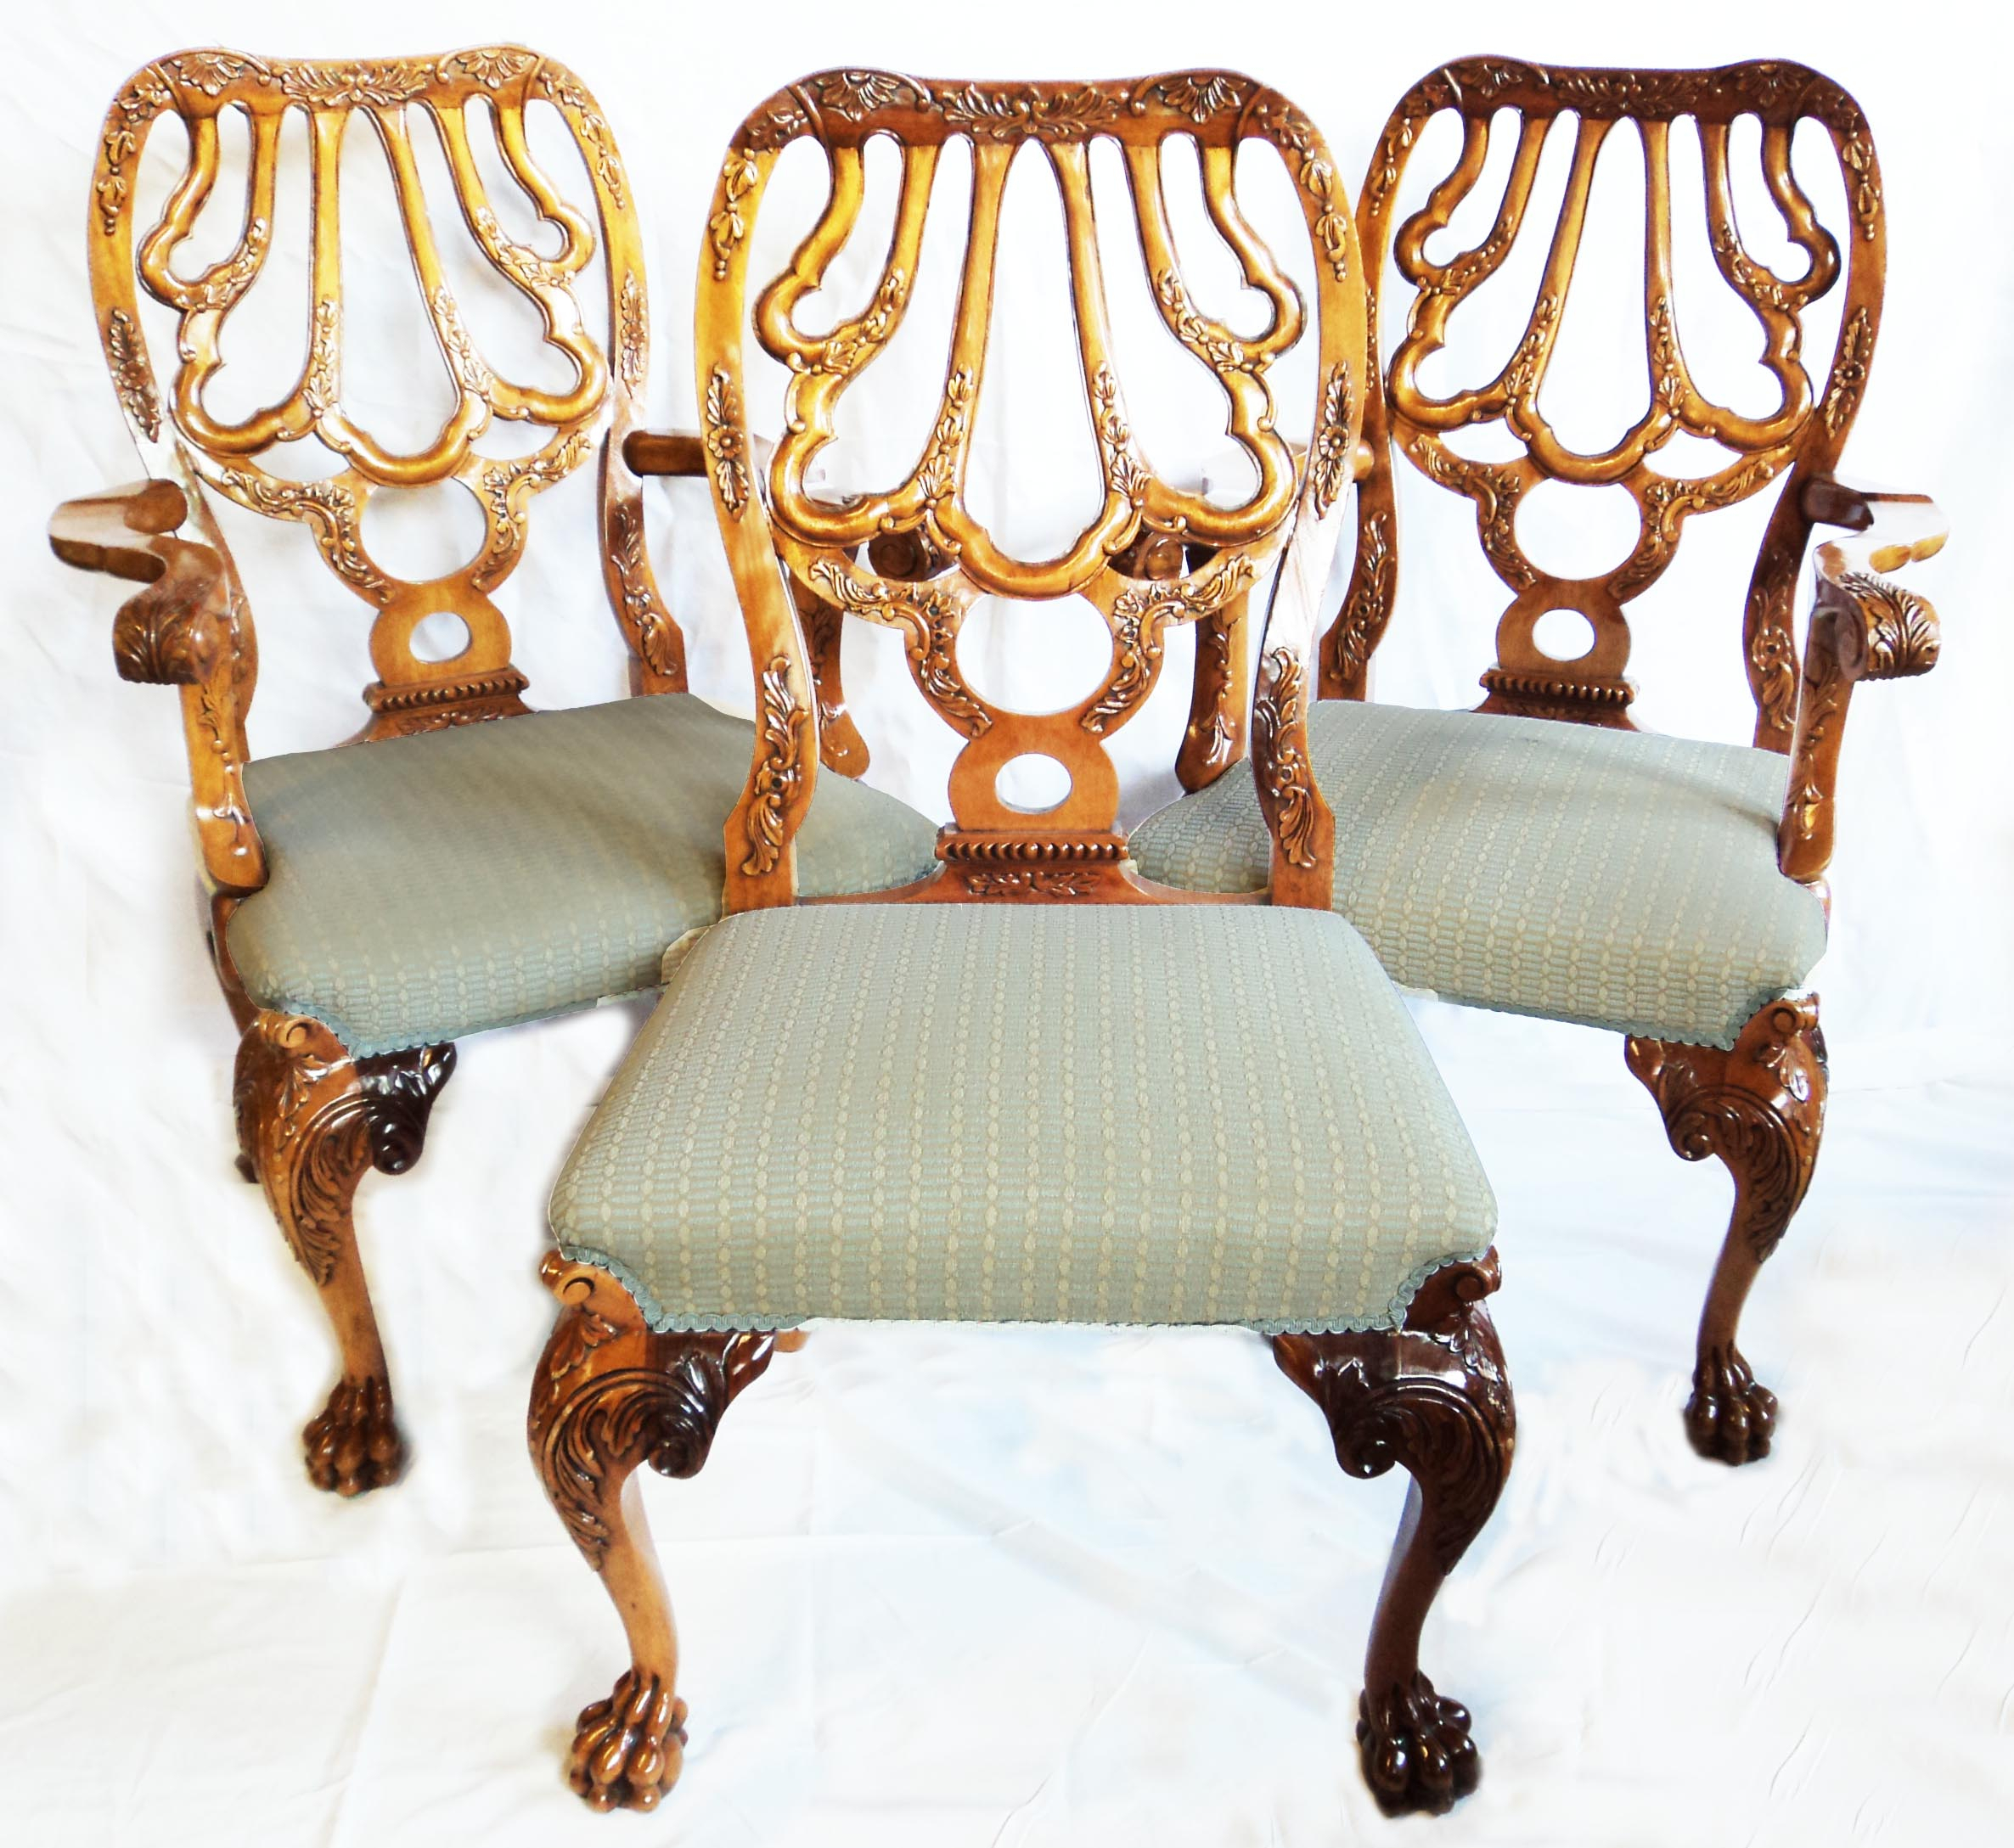 Rendells Fine Art Auctioneers Gallery Within Most Popular Giles 3 Piece Dining Sets (#14 of 20)